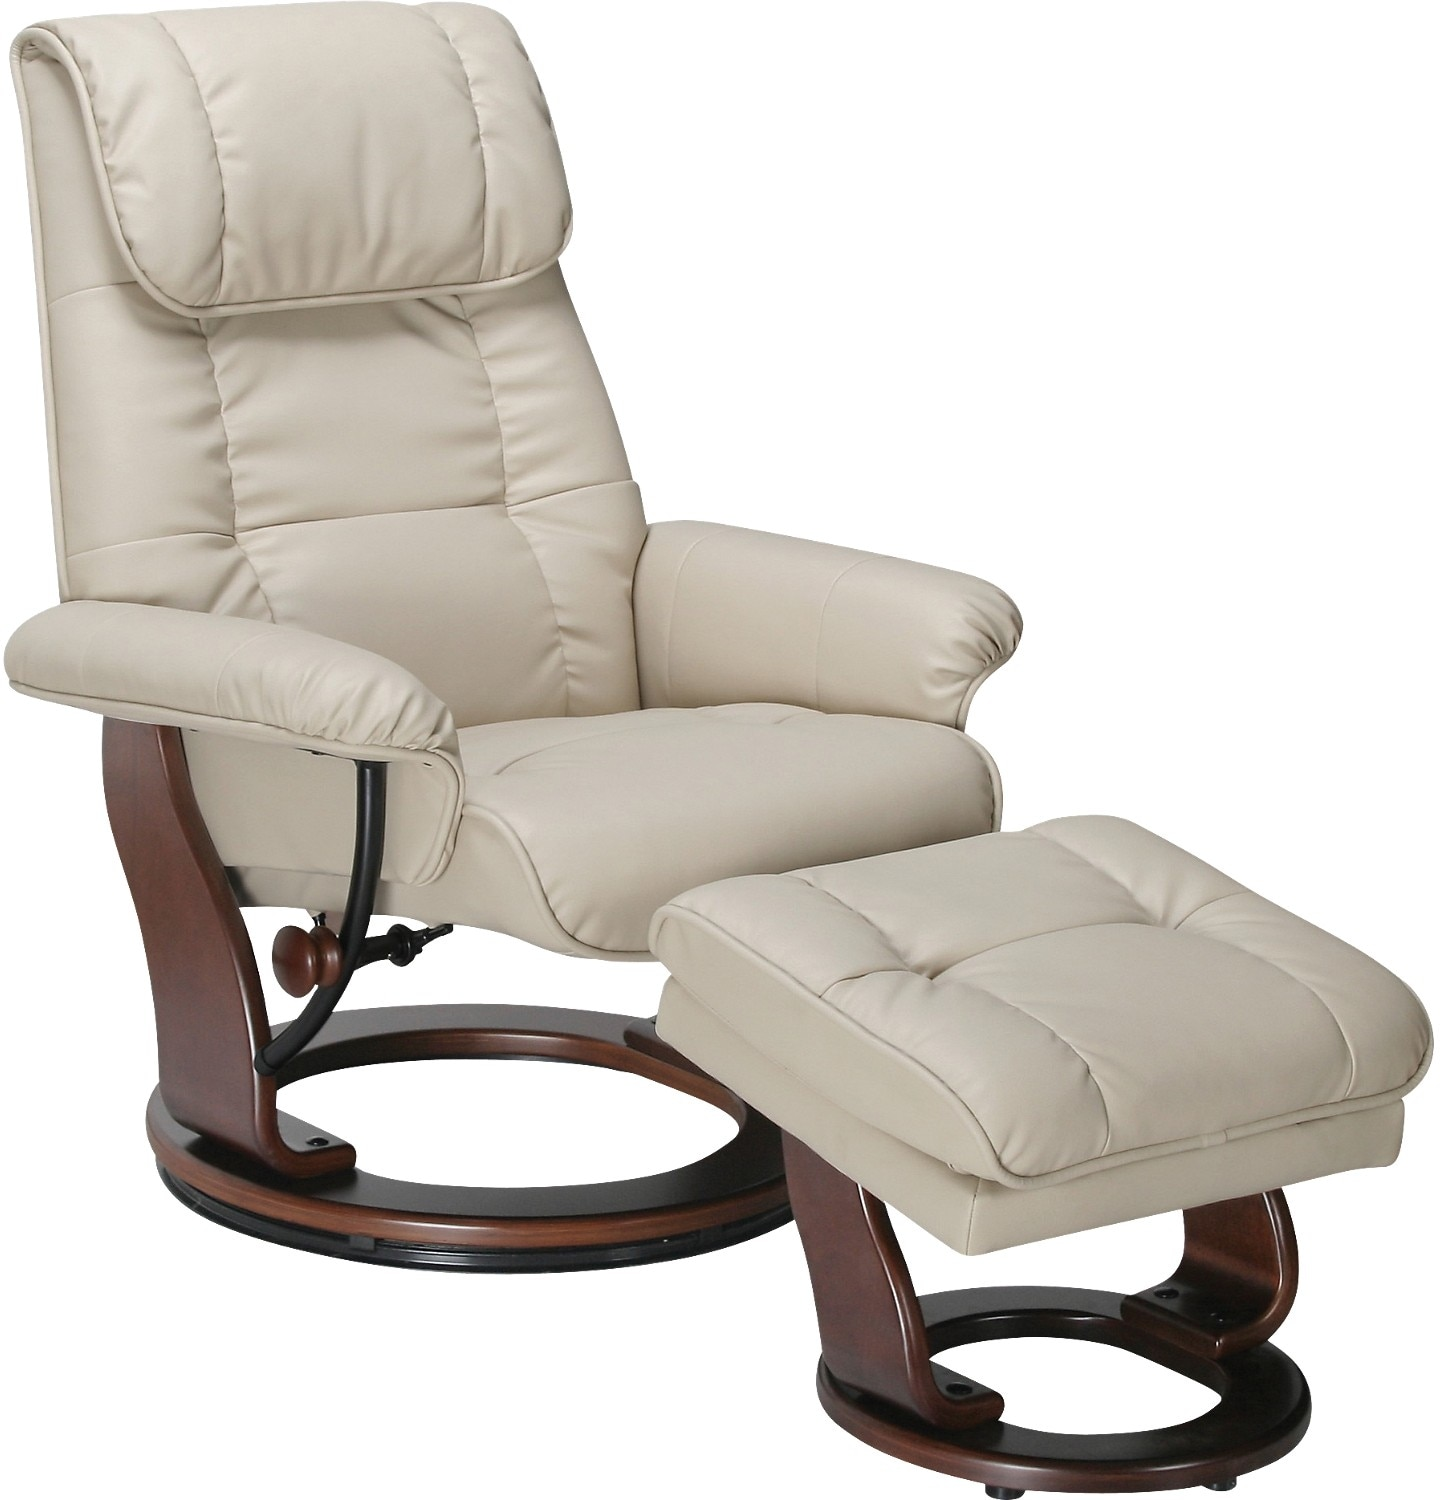 Living Room Furniture - Dixon Taupe Reclining Chair & Ottoman